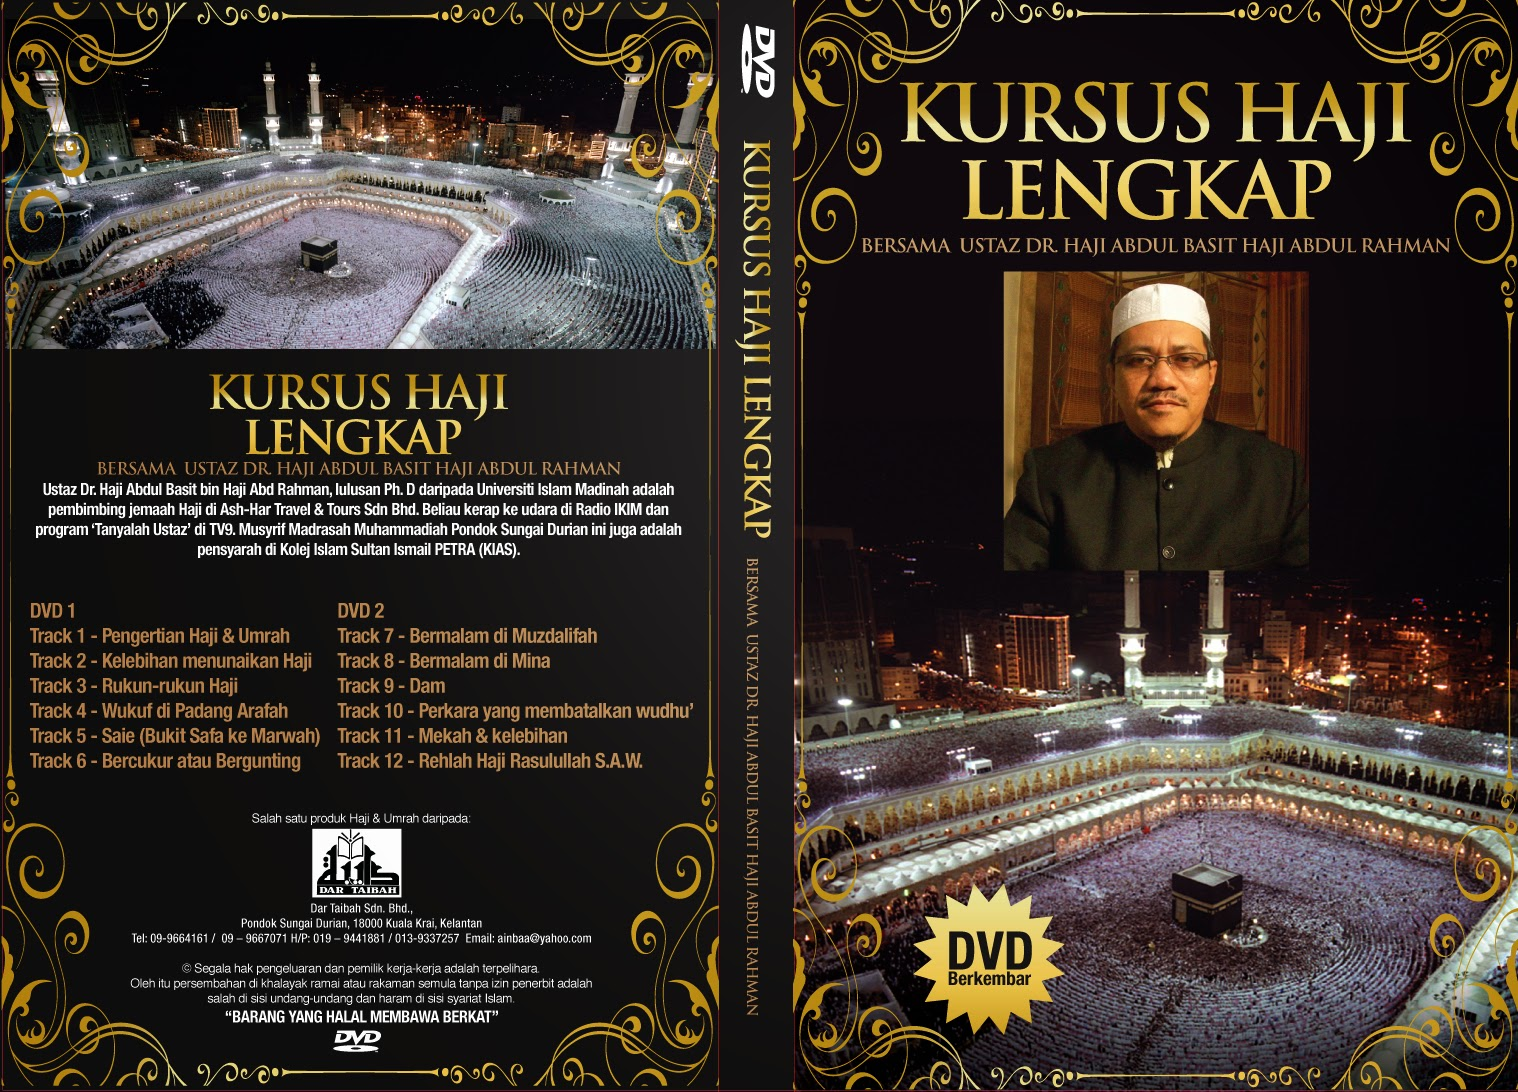 DVD cover -Haji 201010